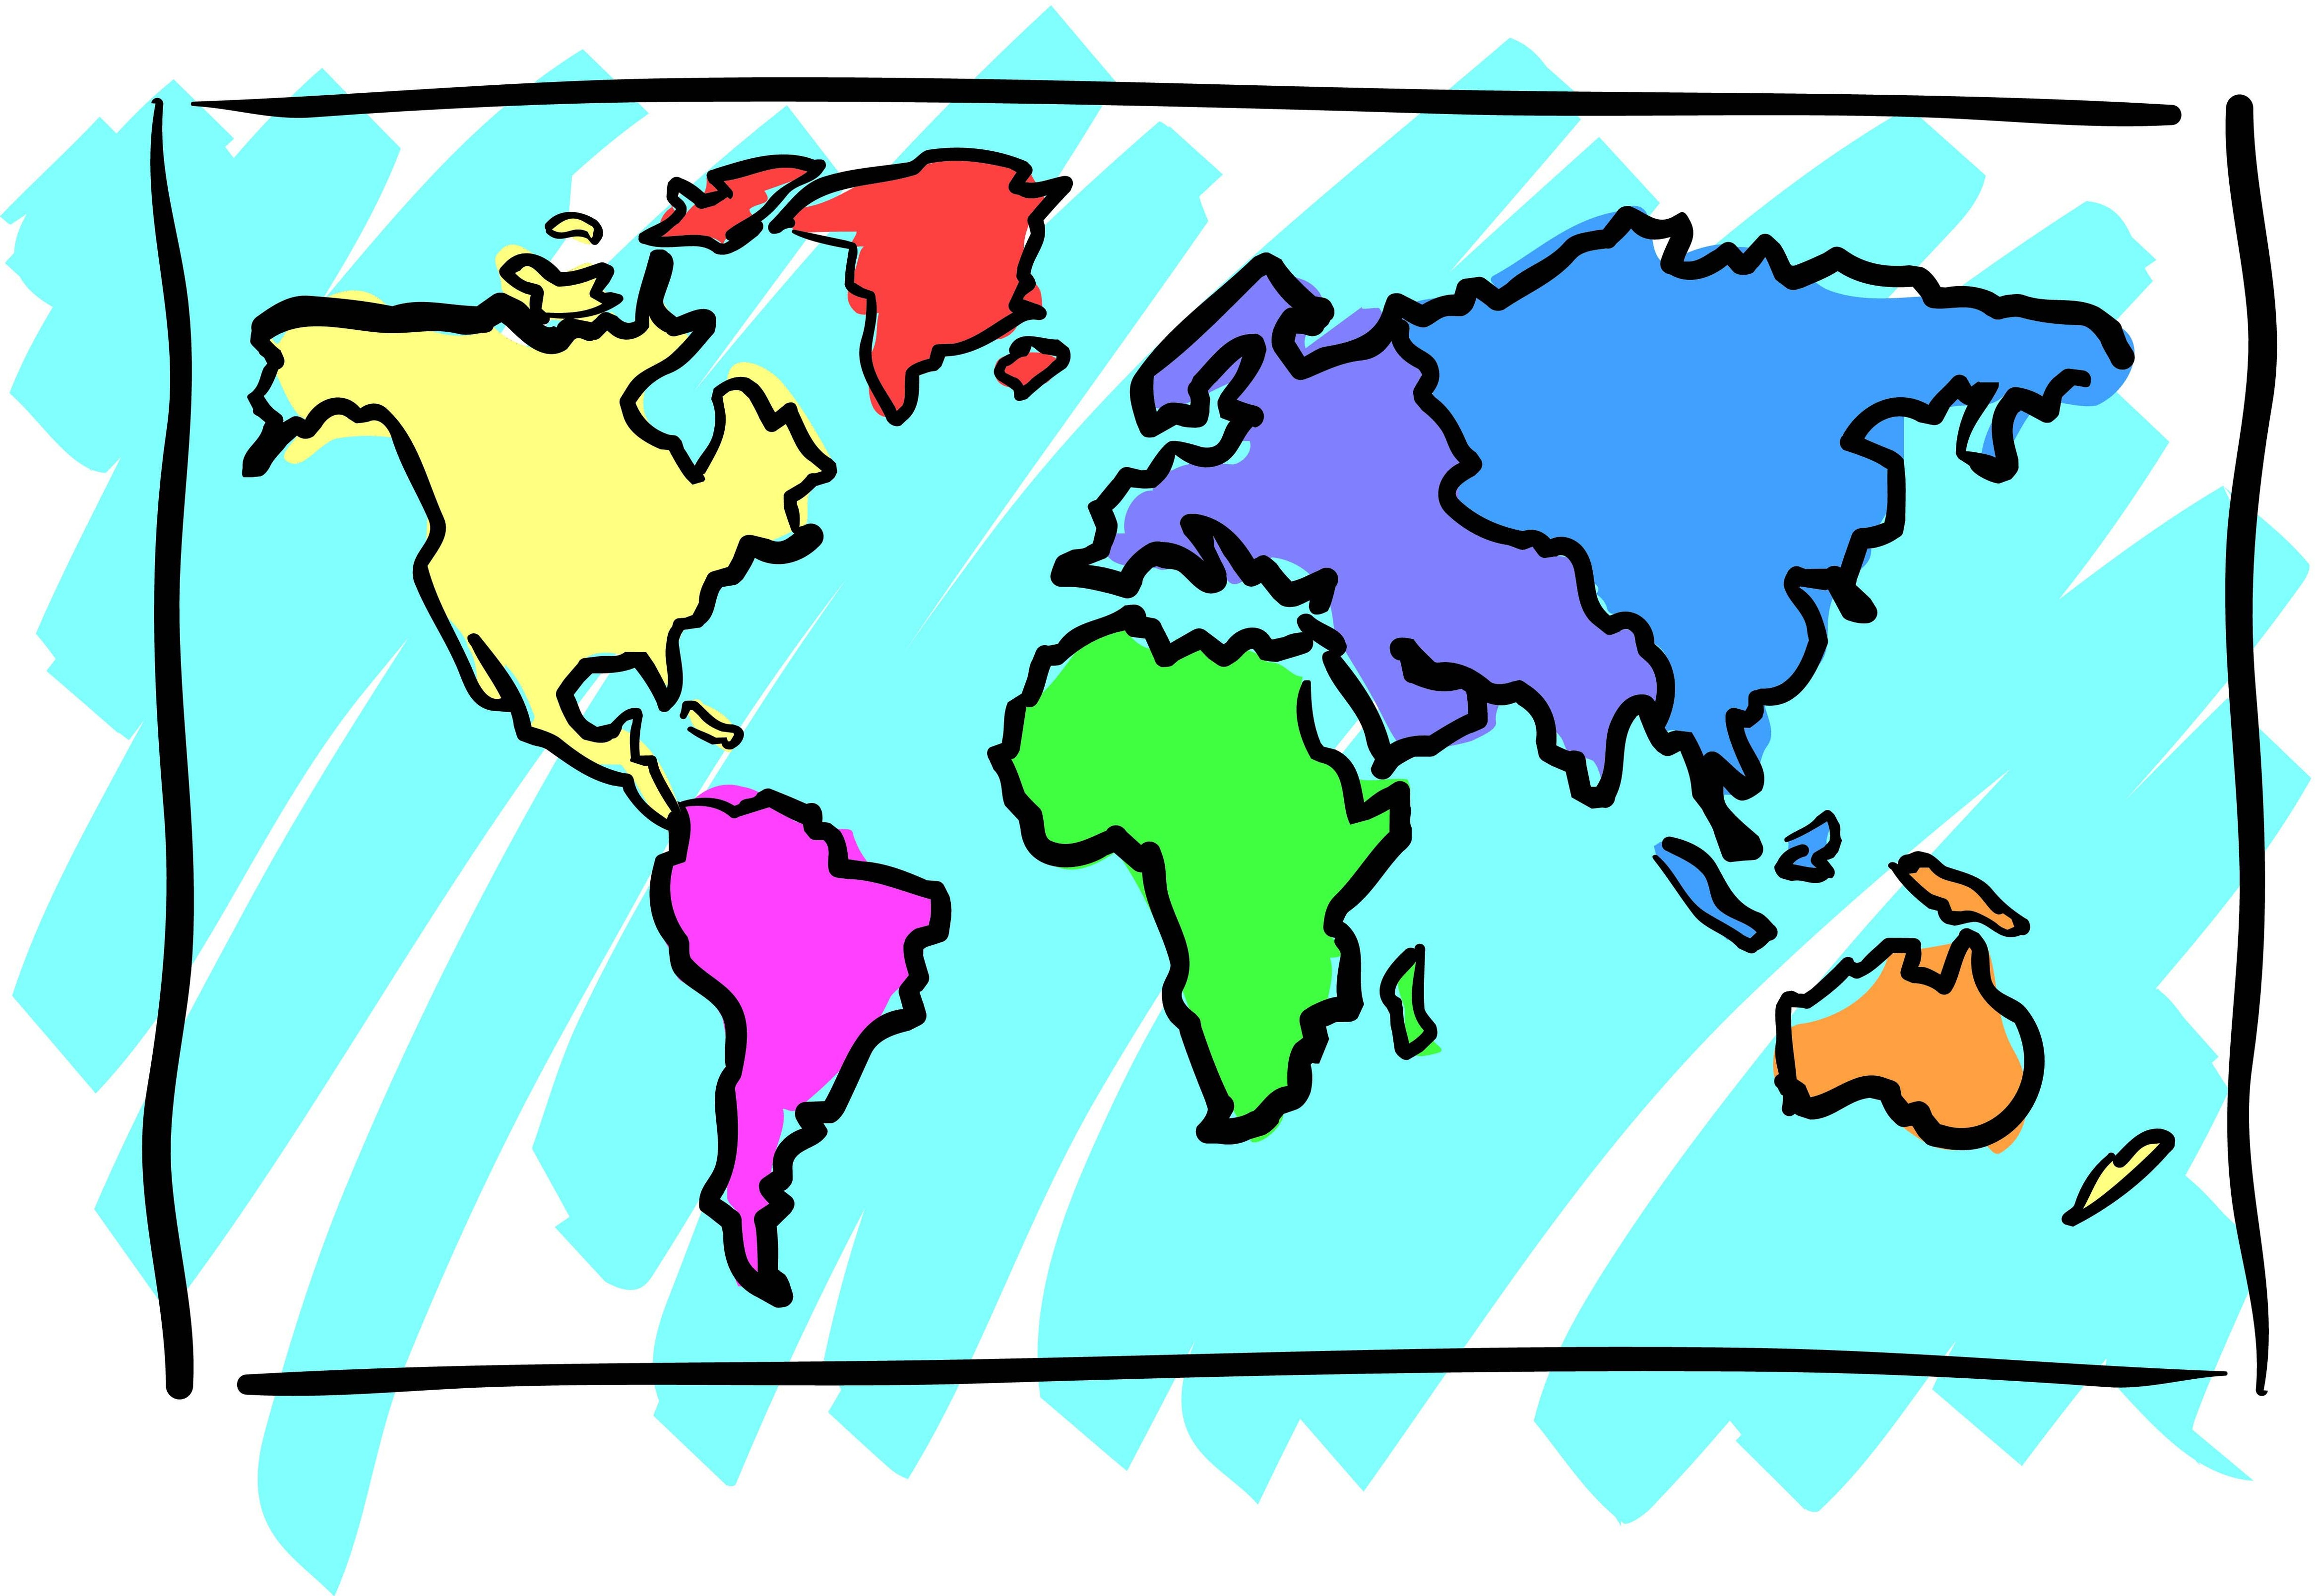 Clipart of world map jpg library World map clipart easy - ClipartFest jpg library